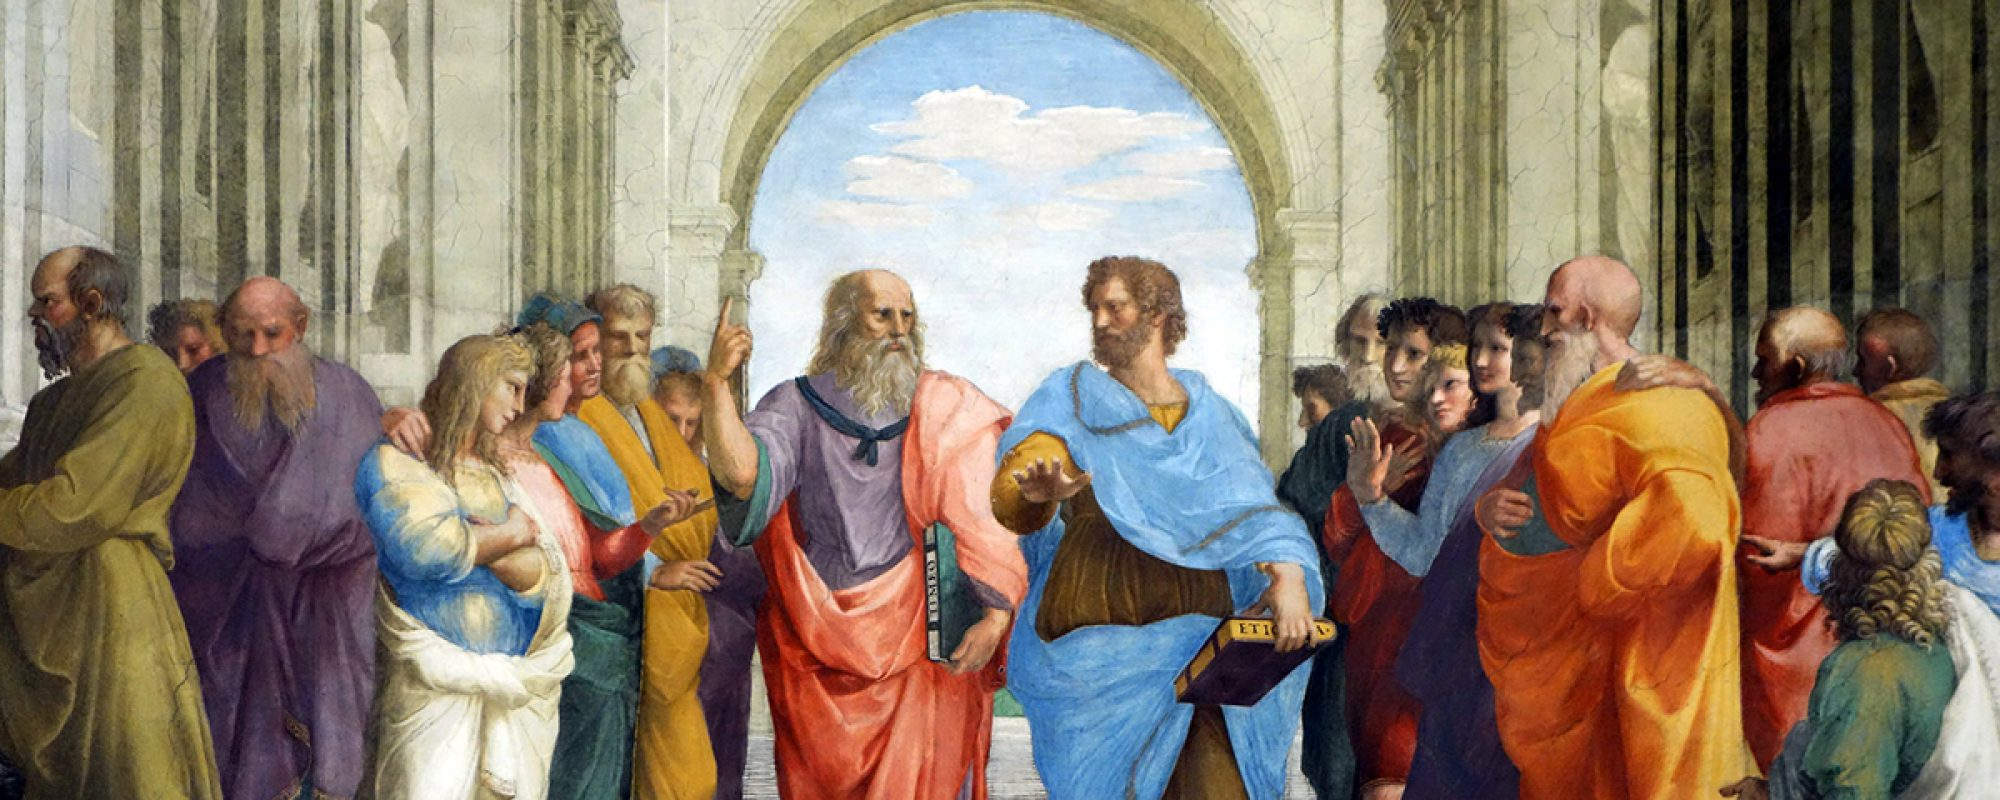 political justice plato and aristotle essay Aristotle and plato - political  of plato and aristotle - this essay will be  life as a life of justice, censorship and knowledge plato was a philosopher.